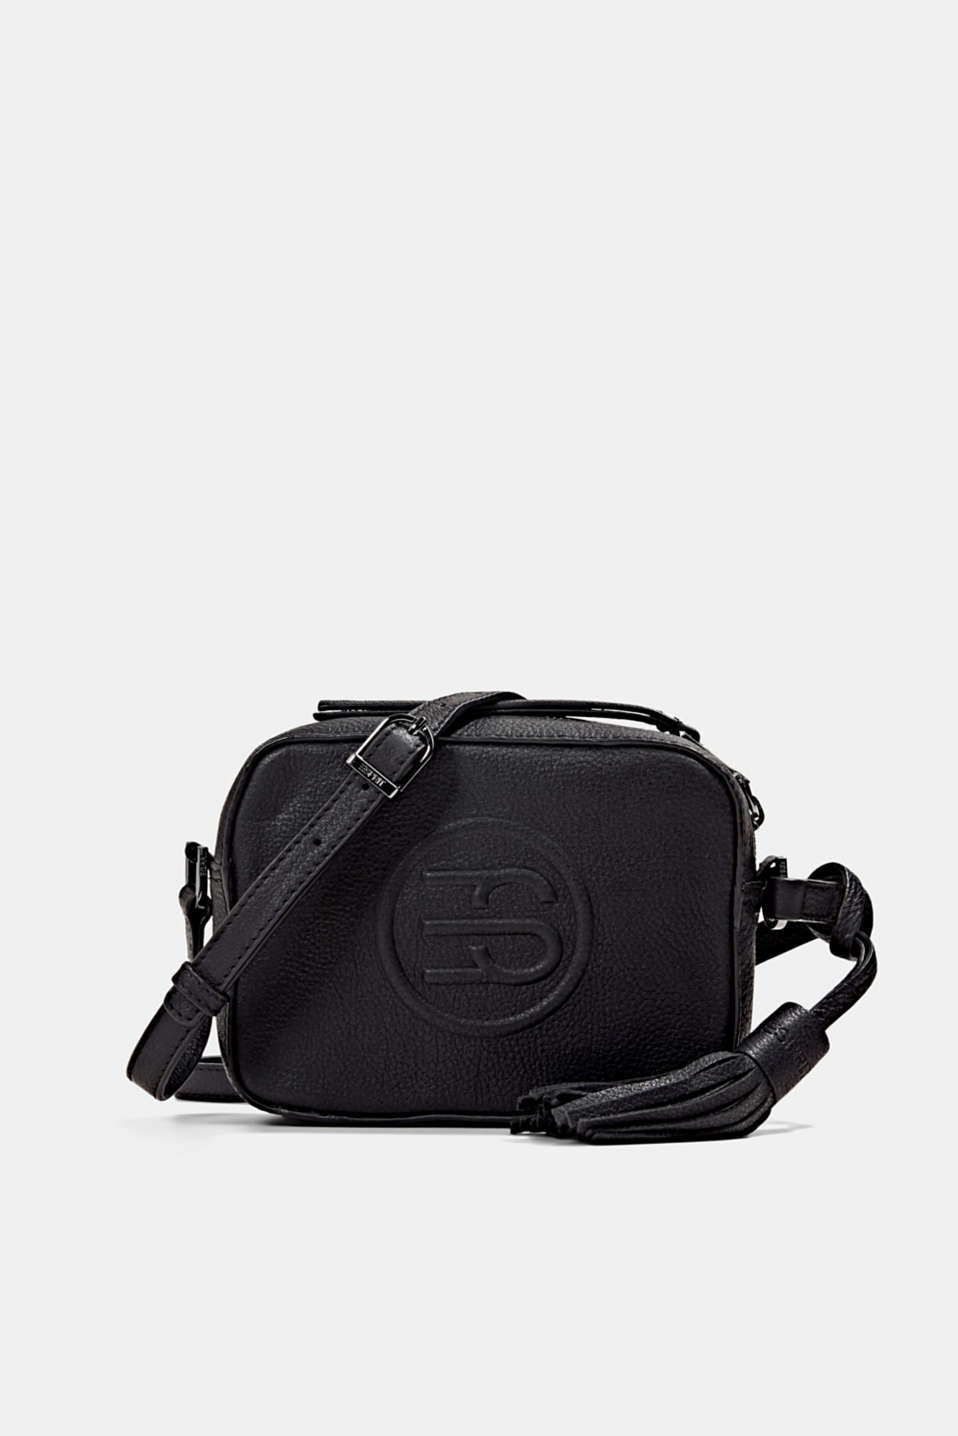 Esprit - Camera bag in pelle